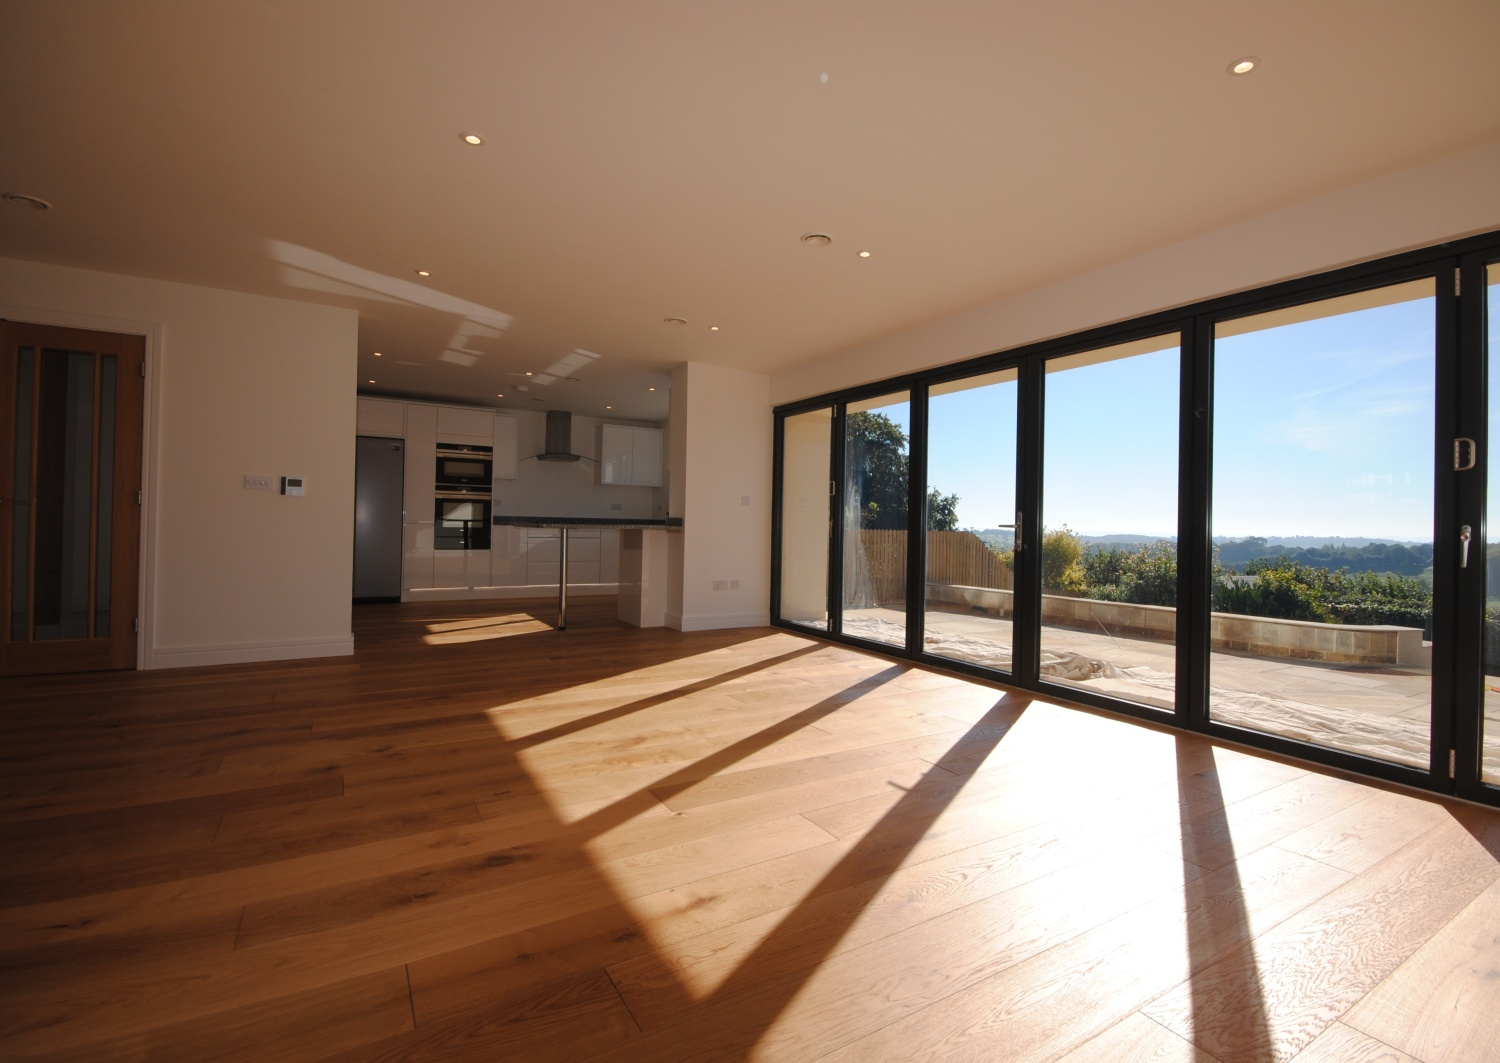 Horsecombe Brown Bath (Bifold Doors)